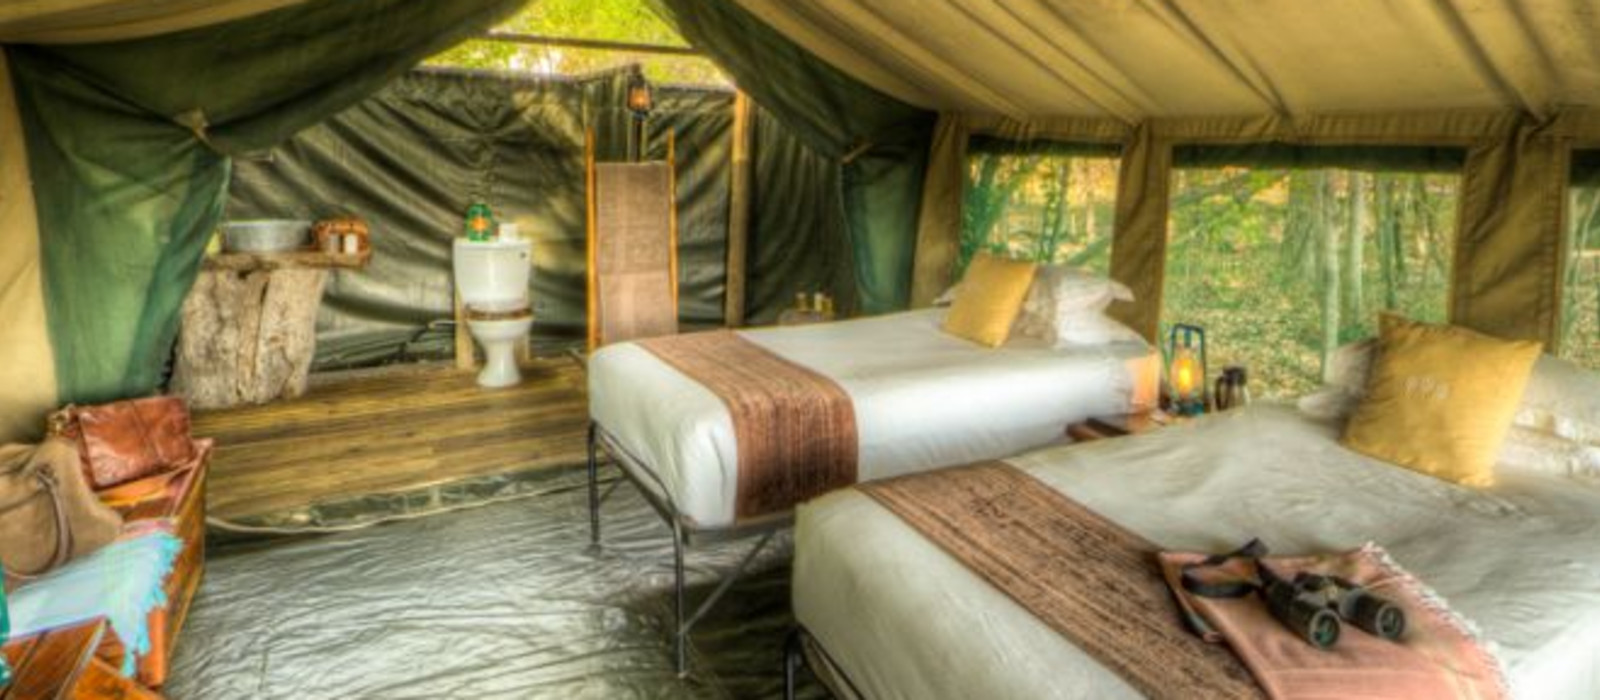 Hotel Footsteps Camp – Footsteps Across The Delta Walking Experience Botswana